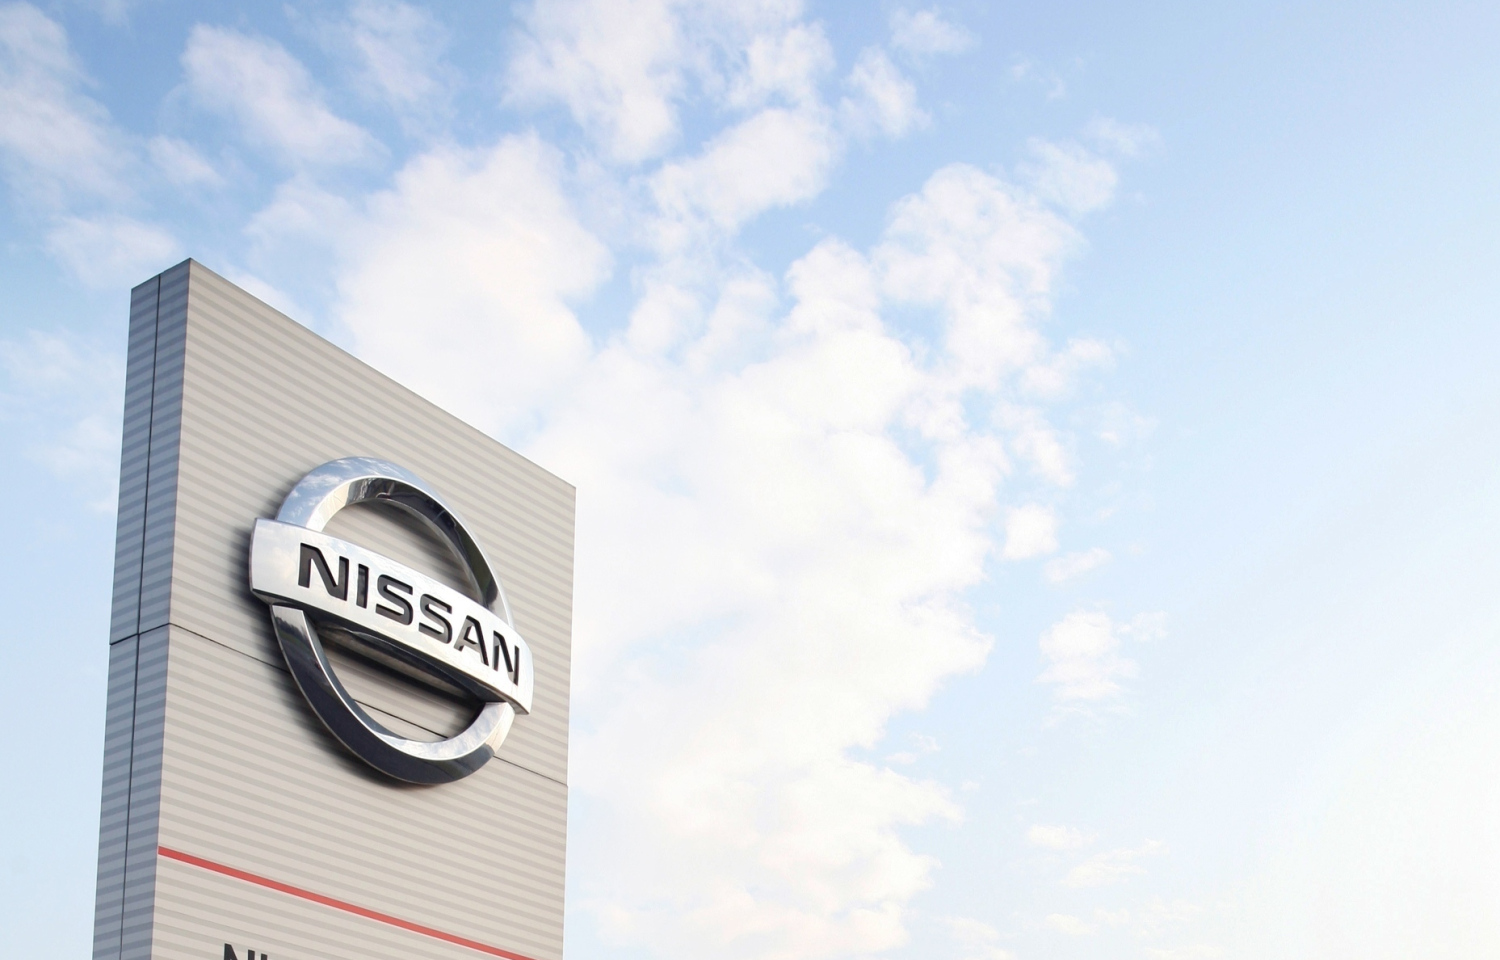 Check out the Nissan gender pay gap survey here 👆